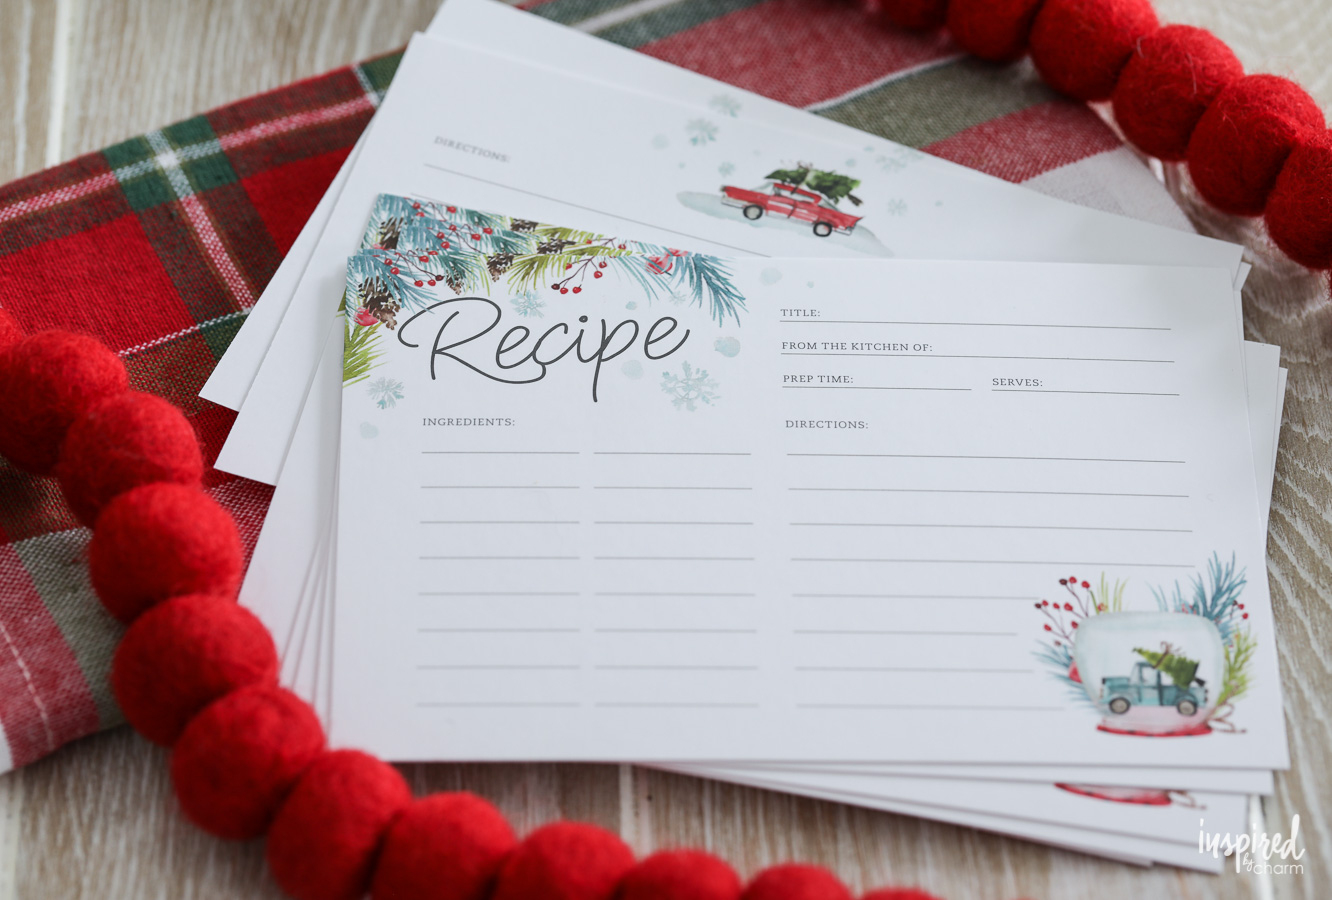 Printable Recipe Cards For Christmas - Free Holiday Download - Free Printable Cards No Download Required